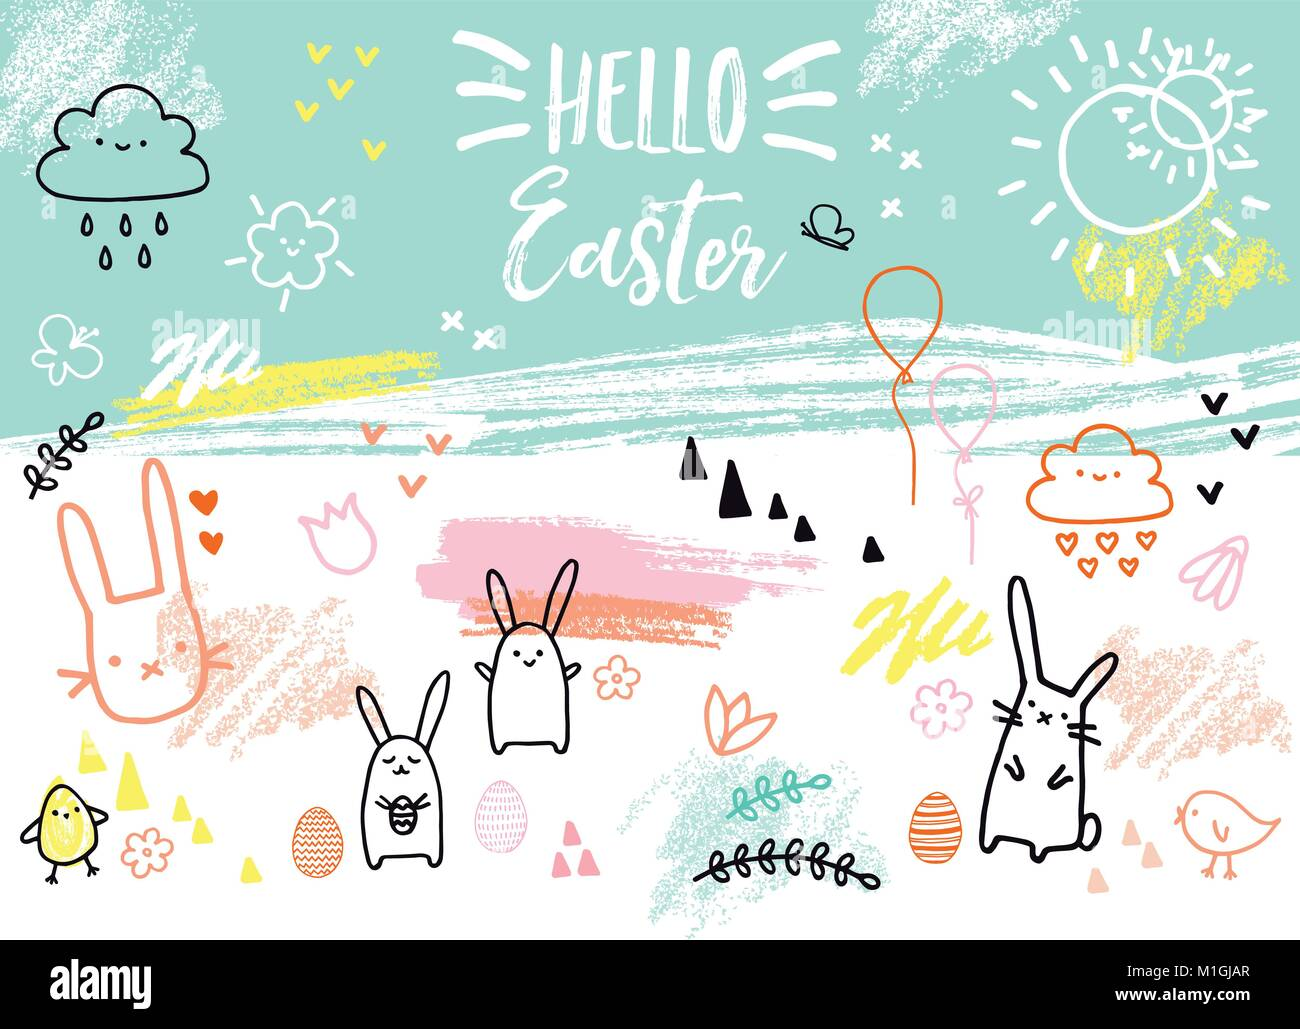 Easter card with bunnies, eggs, flowers, hand-drawn graphic design elements, vector illustration Stock Vector